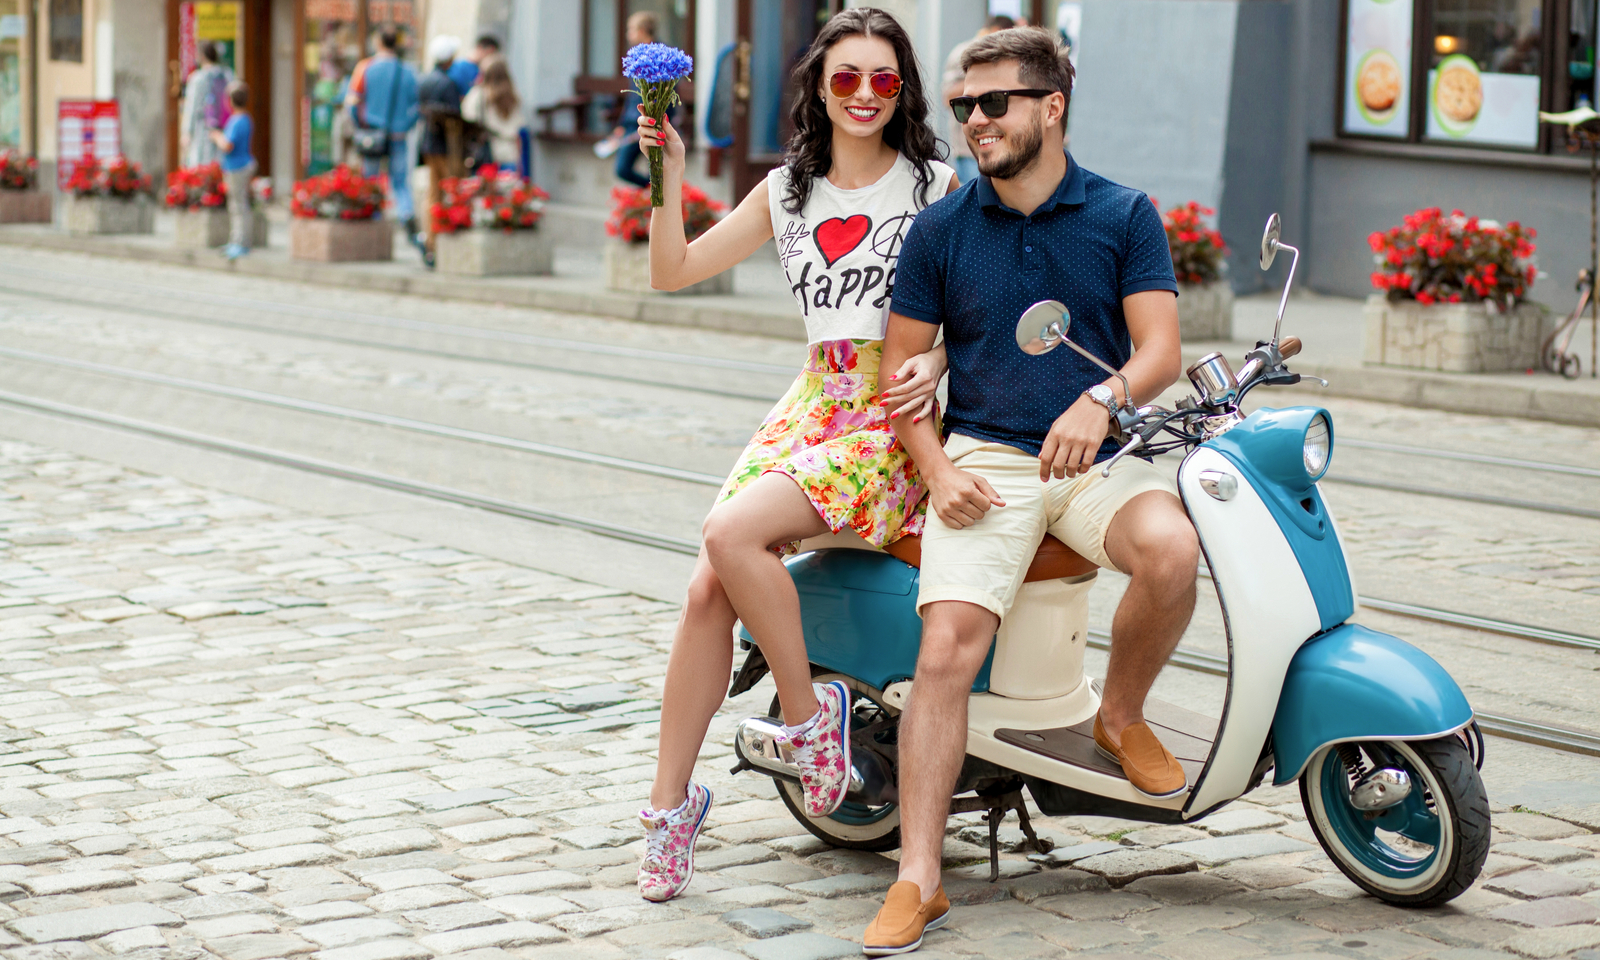 The Manymoons The Latest Travel Trend from Millennial Newlyweds (2)